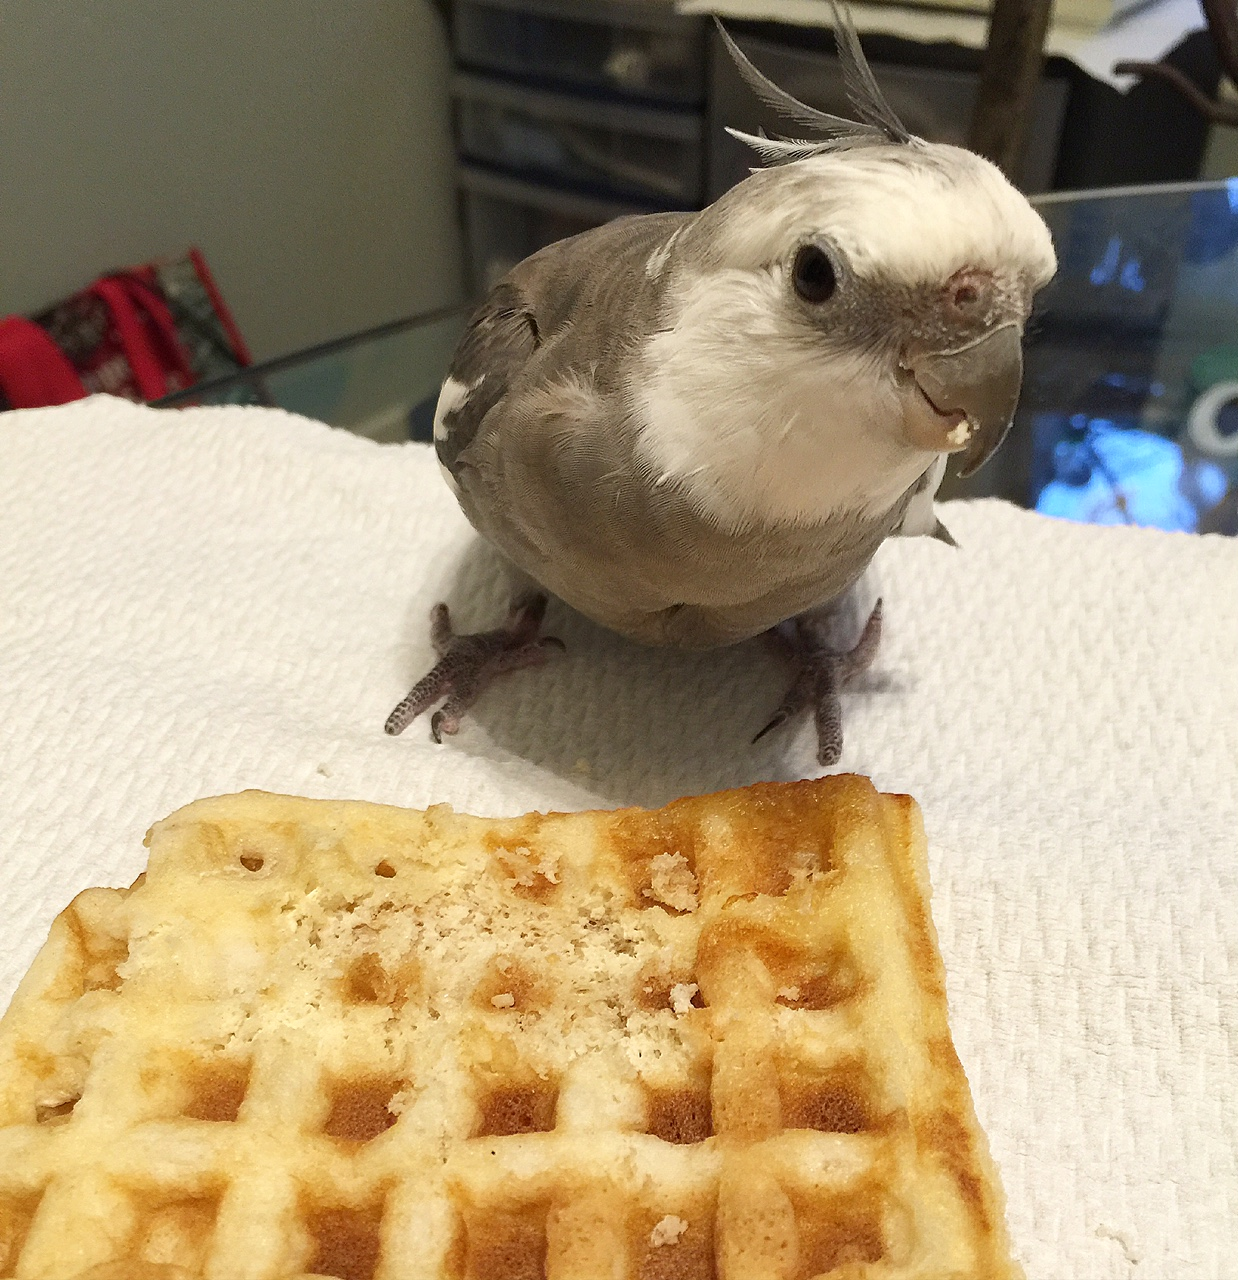 Happiness is....a warm toasted waffle and somebody to share it with (or at least admire how cute you look while you eat it!)